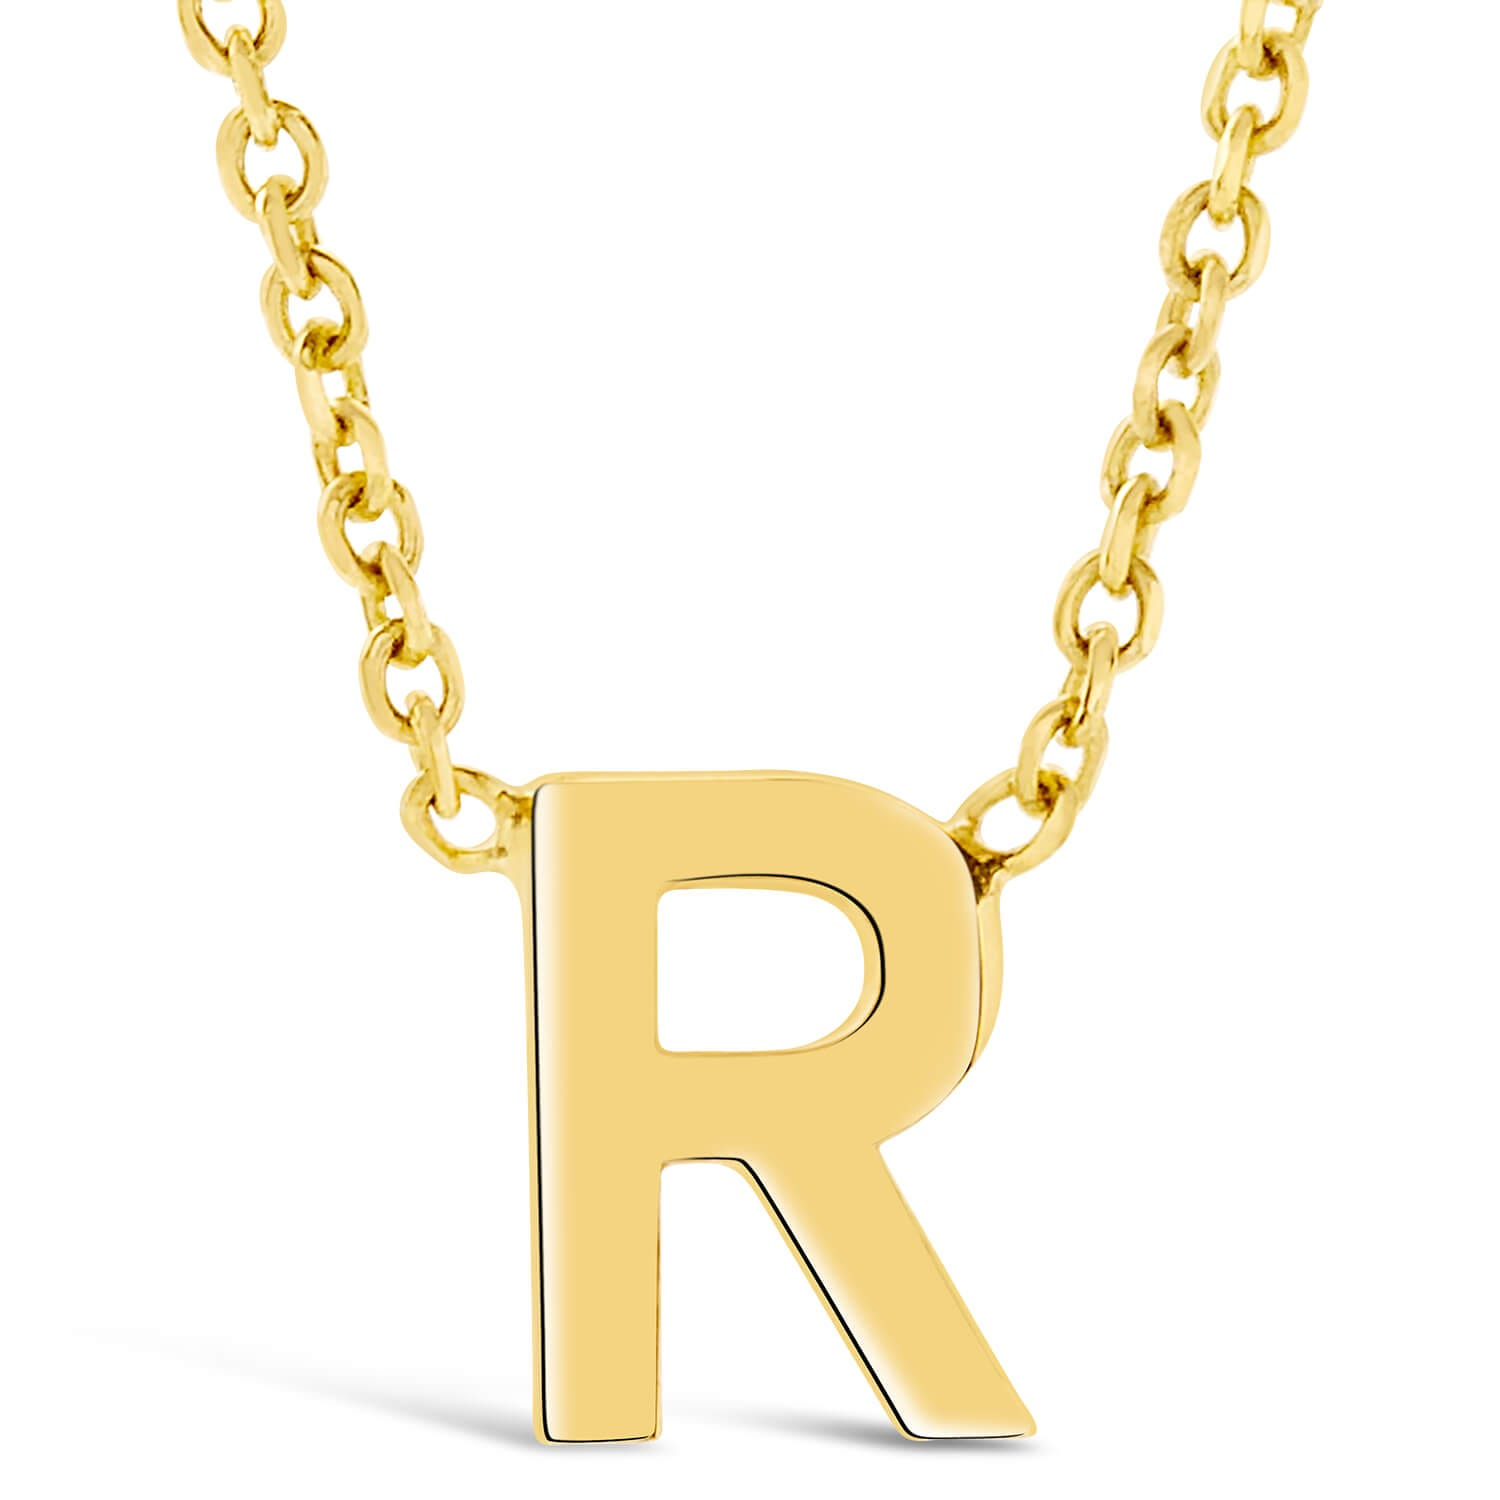 9 Carat Yellow Gold Petite Initial R Necklet (Special Order)